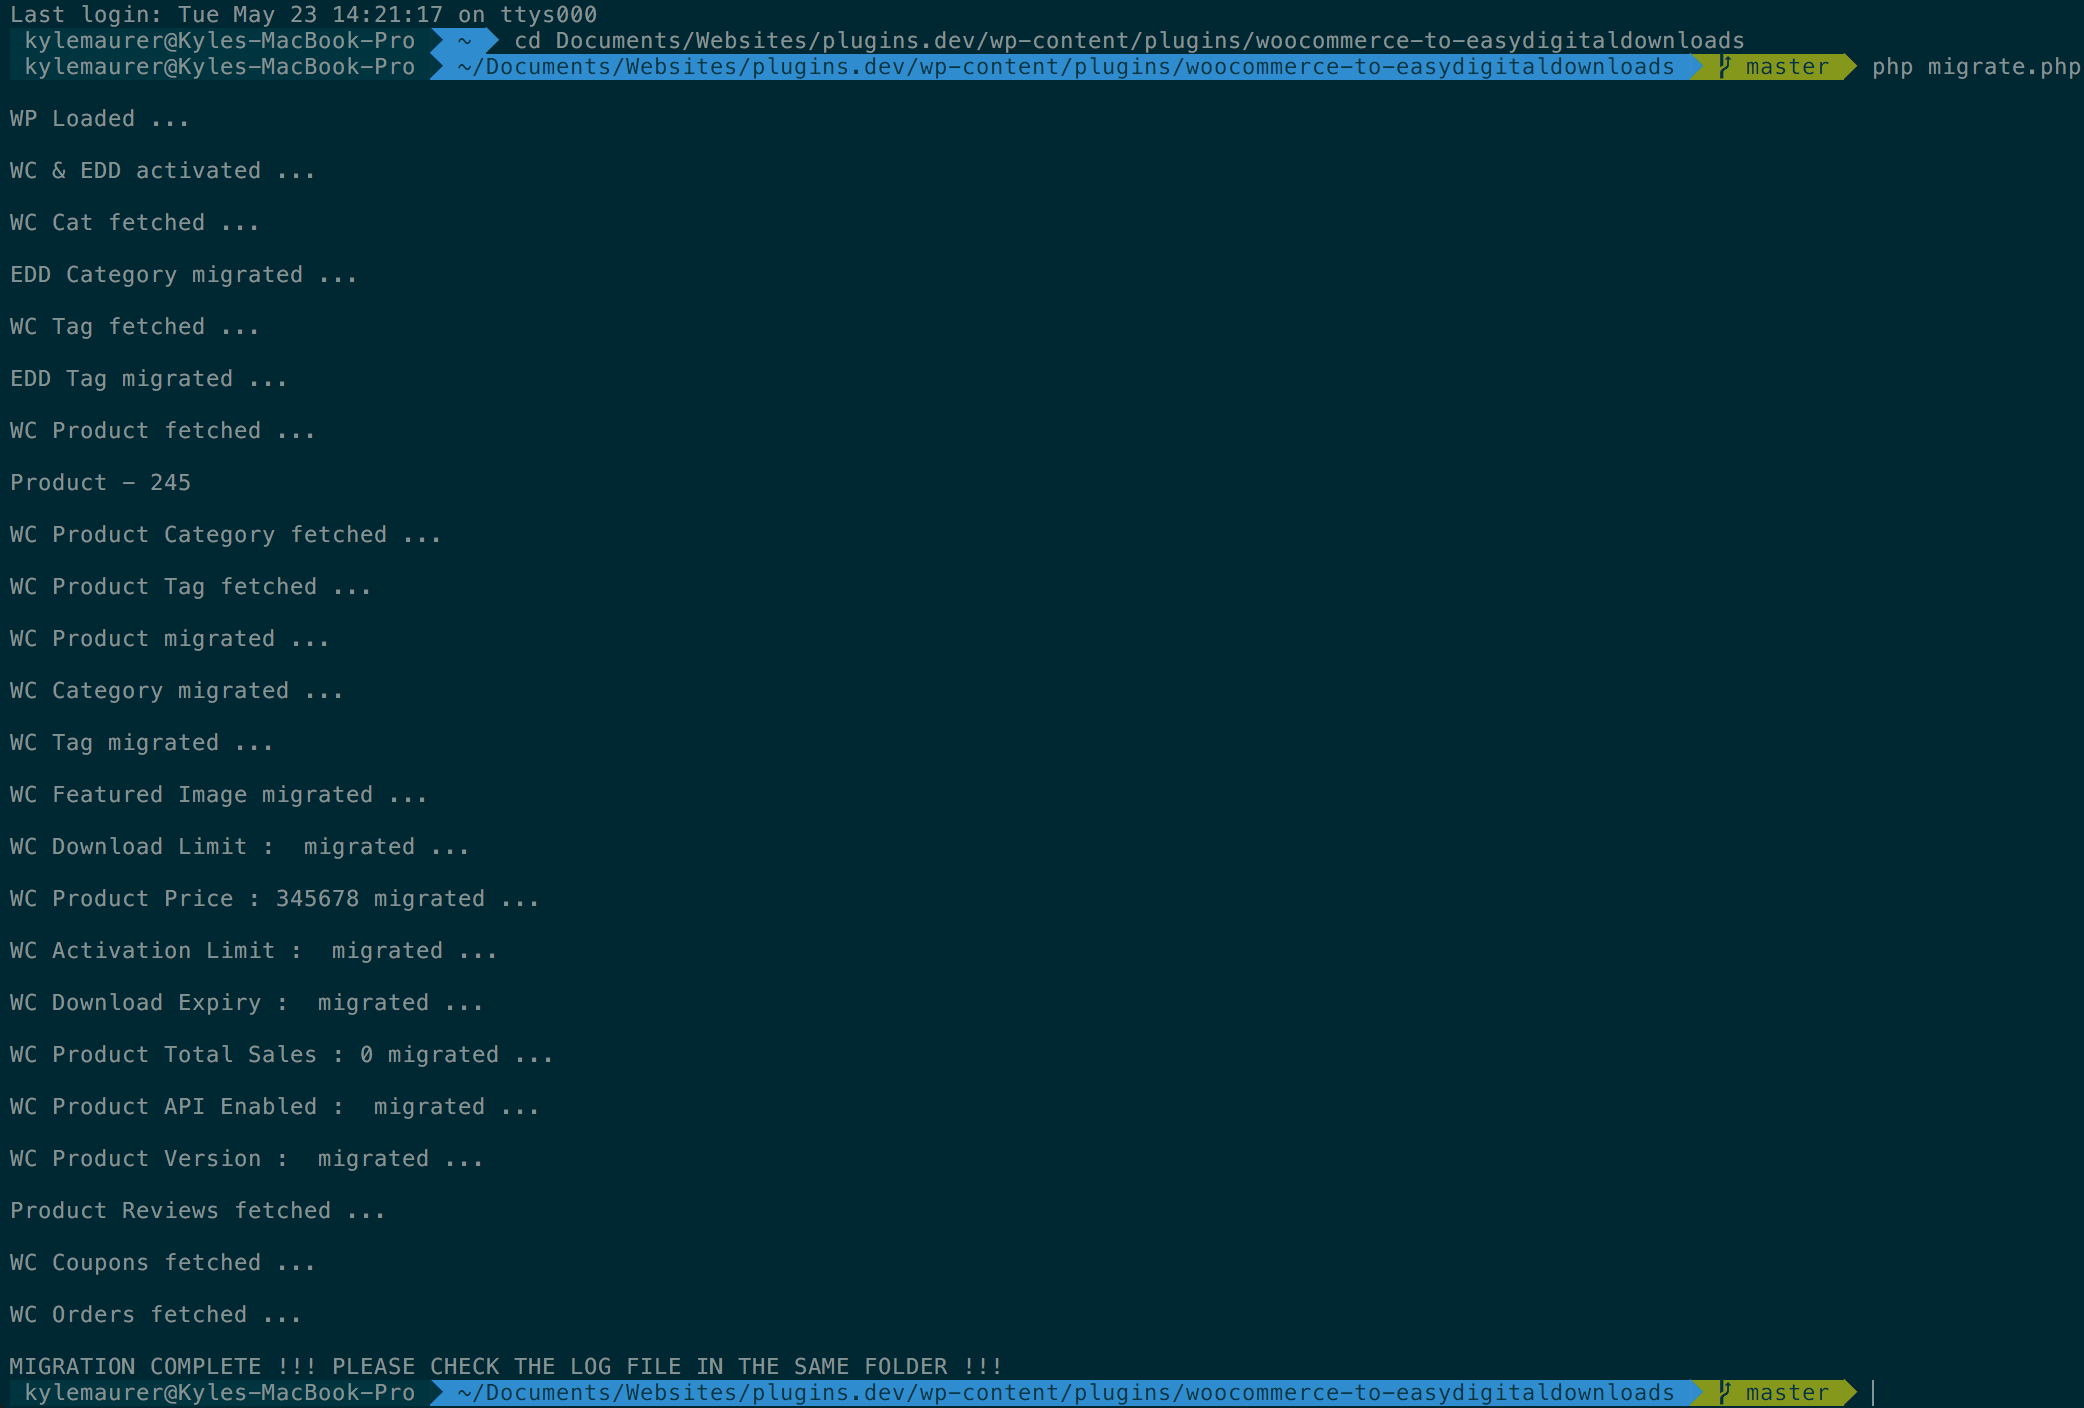 Terminal view showing commands for running PHP script